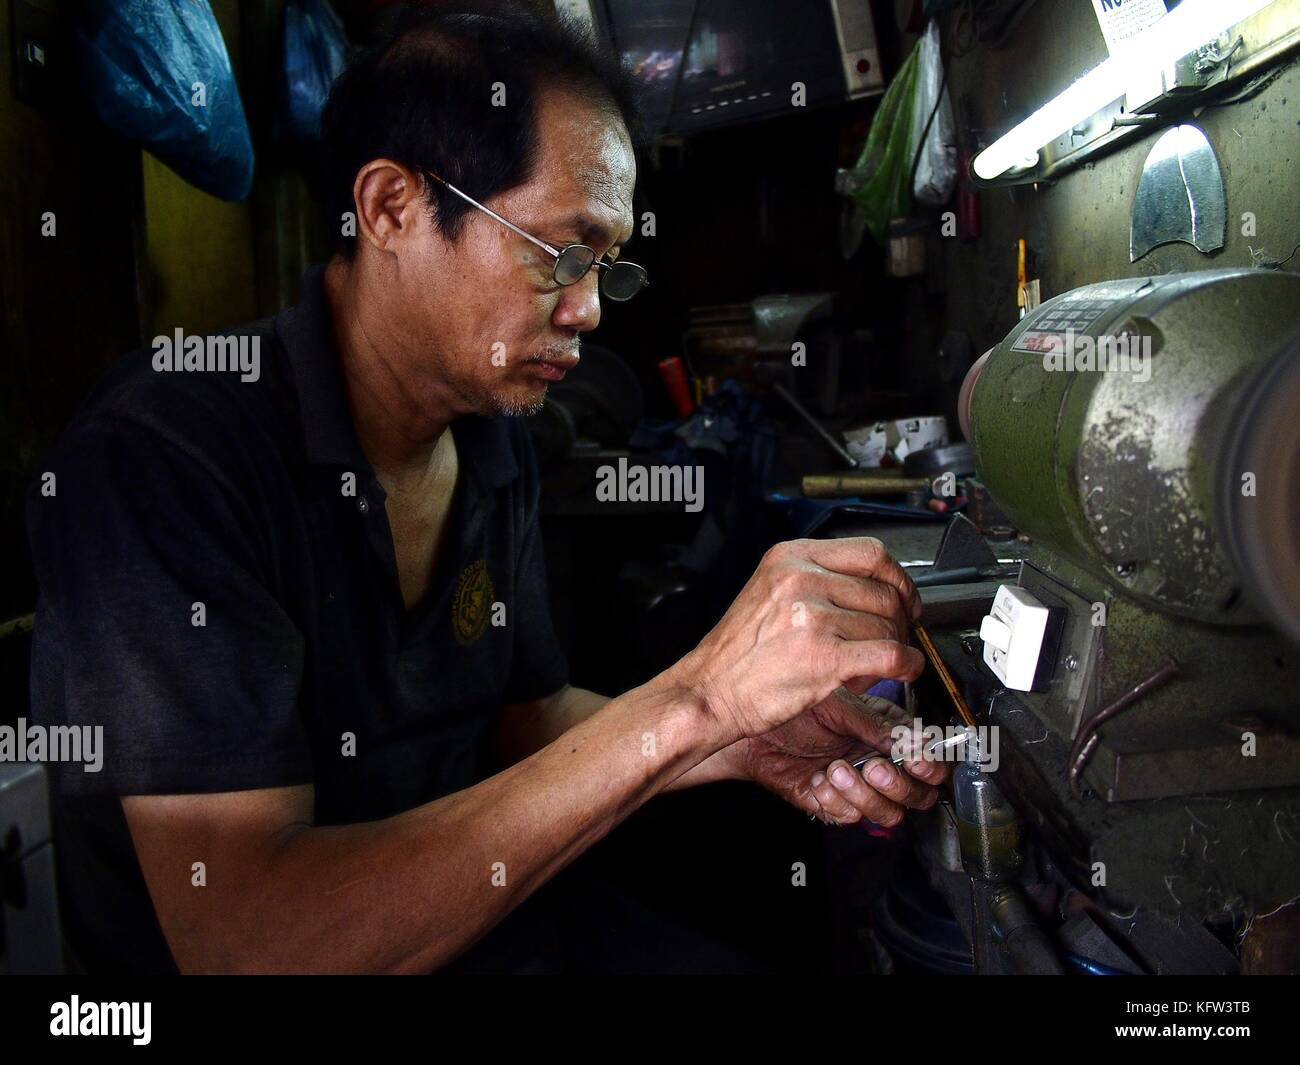 ANTIPOLO CITY, PHILIPPINES - OCTOBER 27, 2017: A worker sharpens a nipper in his repair shop. - Stock Image